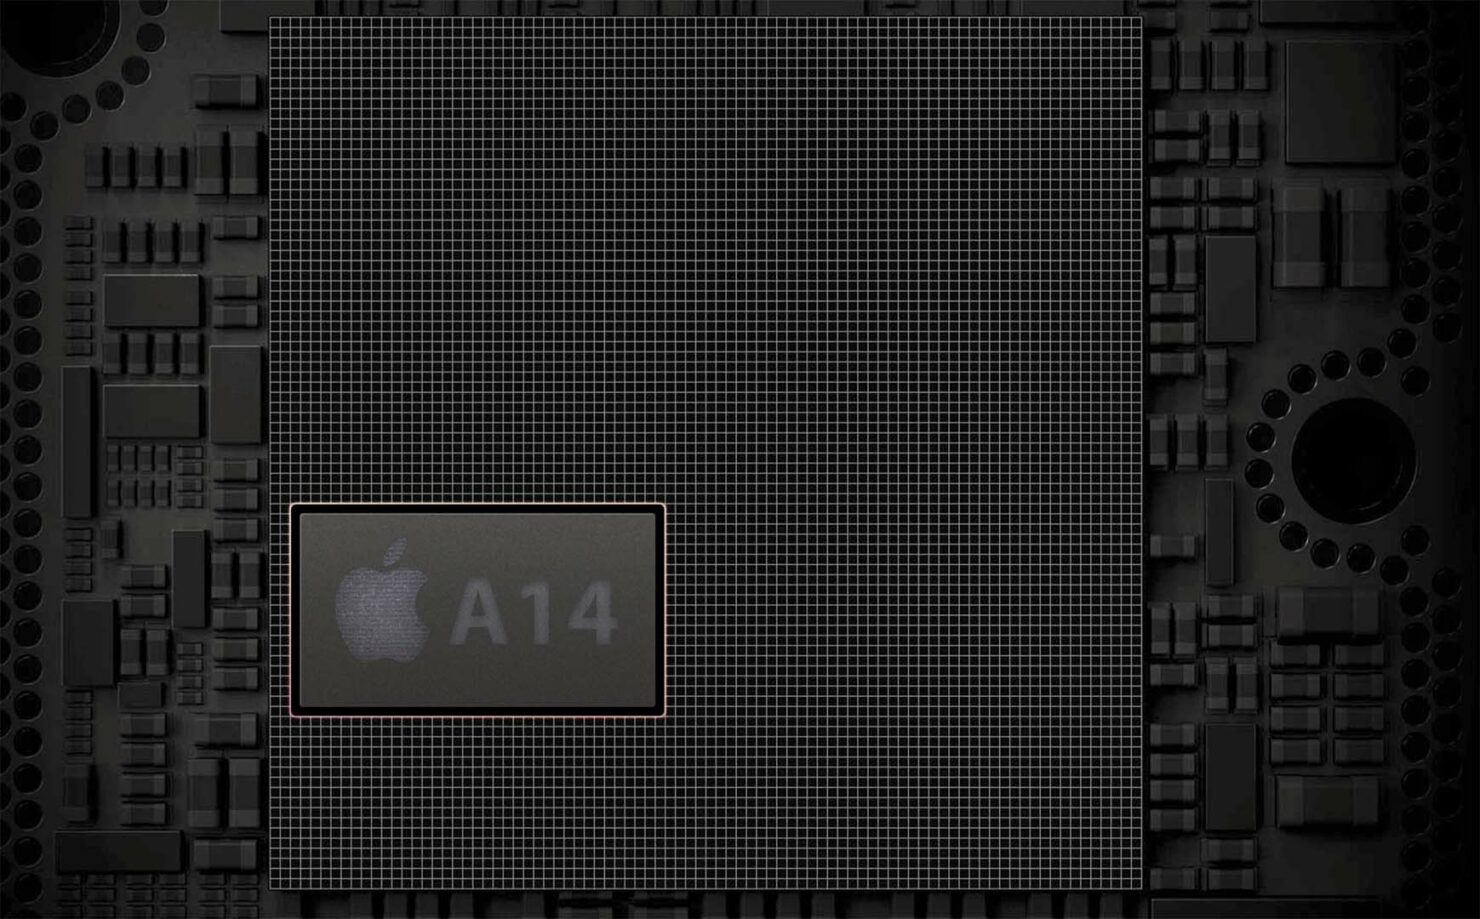 Apple Has Reportedly 'Signed Off on' 5nm A14 Bionic Chipset Design